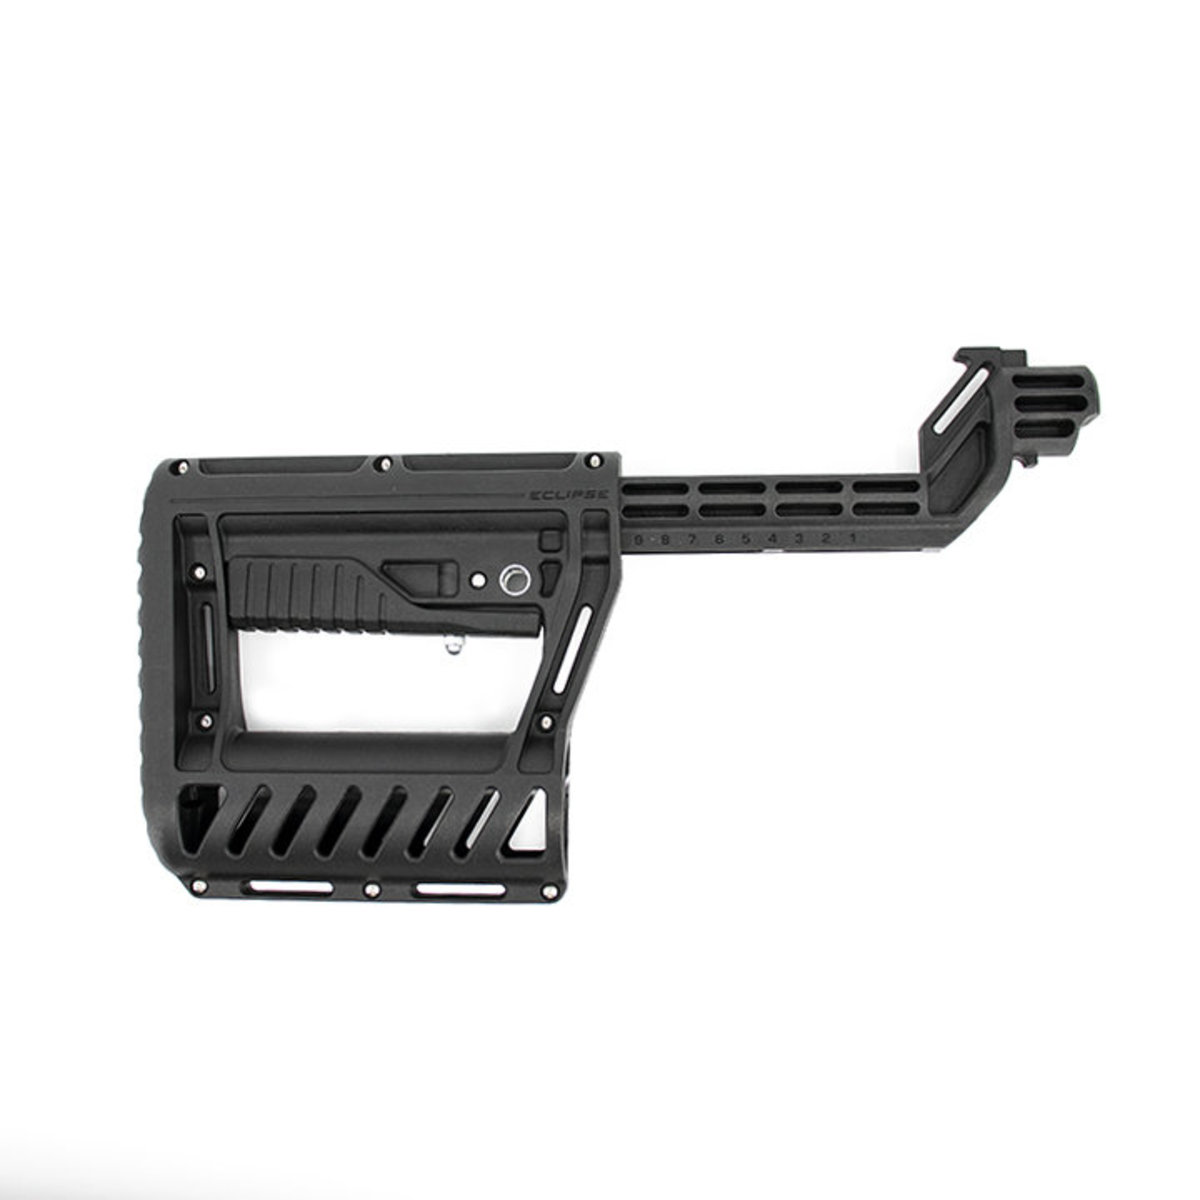 View larger image of Planet Eclipse PWR Stock for EMF100 Paintball Gun